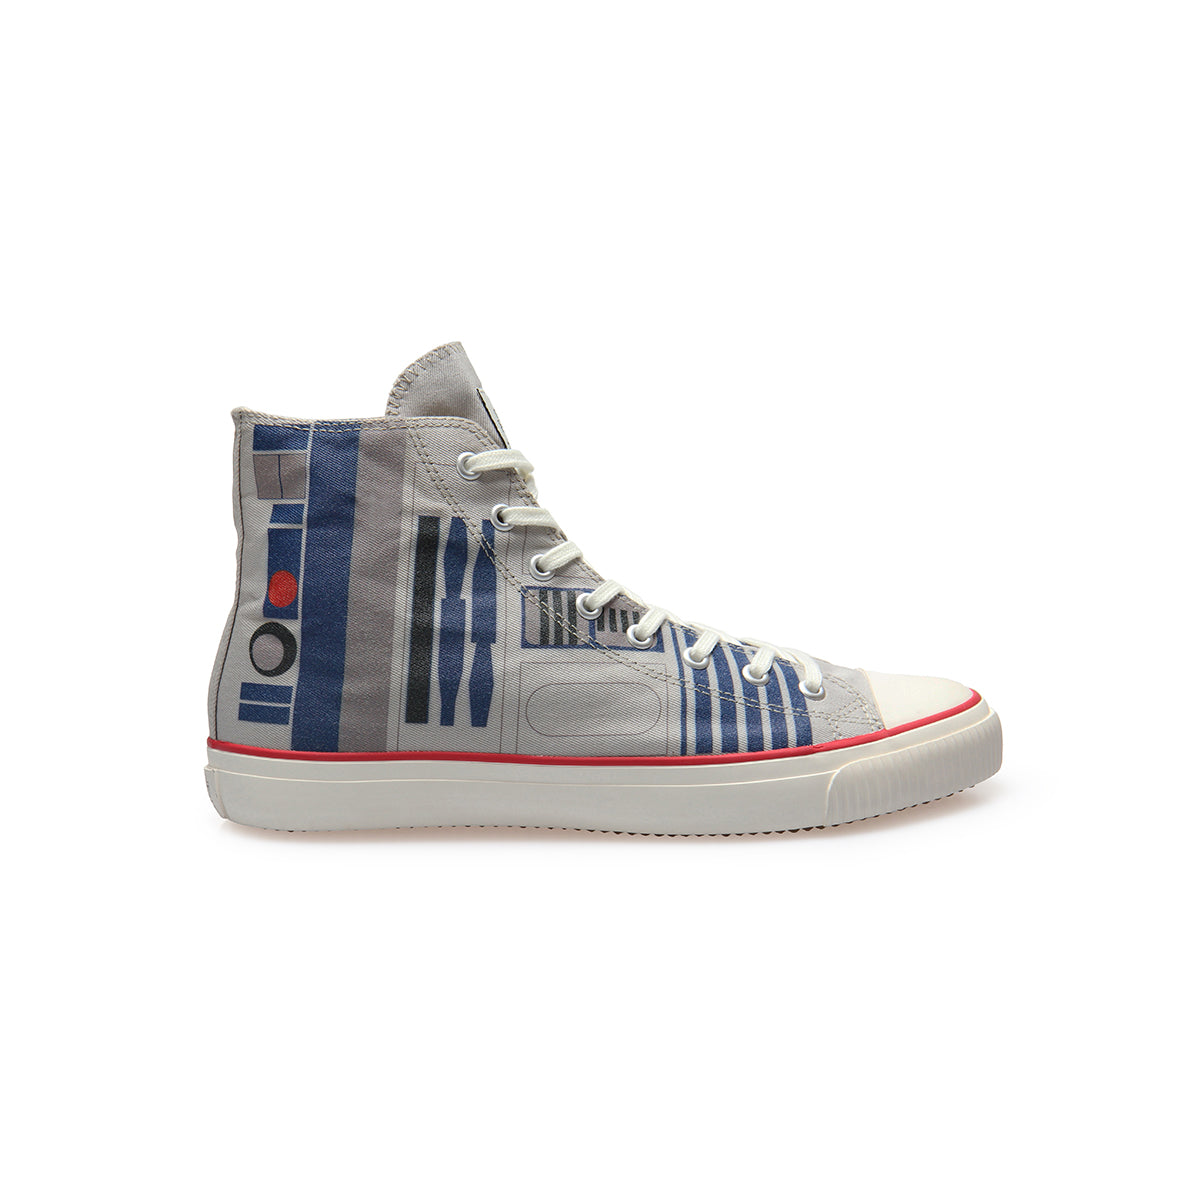 cbc5b70efe OFFICIAL Star Wars Mens R2-D2 High Top Vegan sneaker